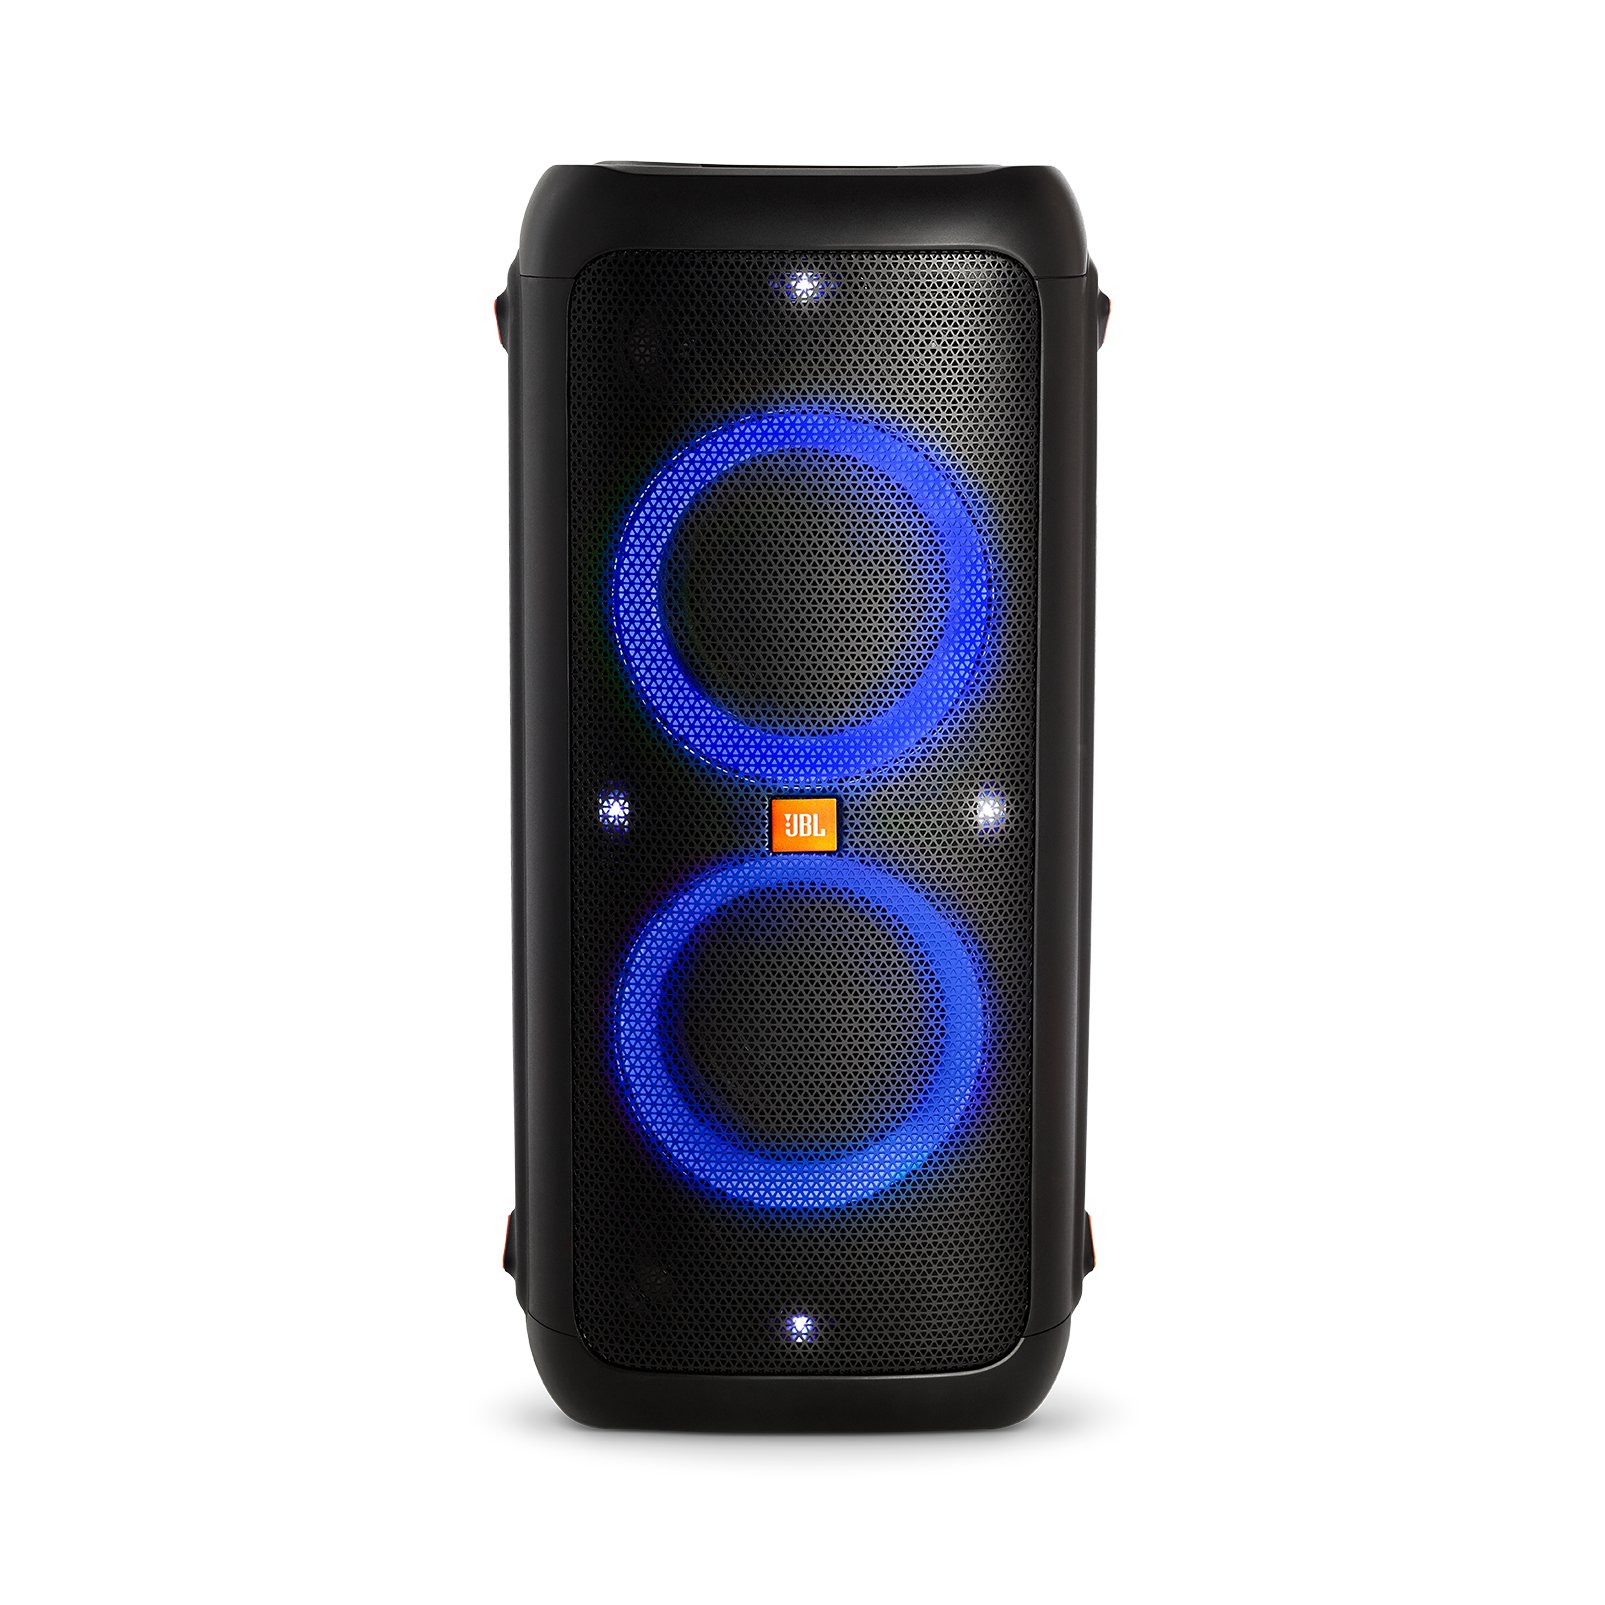 jbl partybox 200 portable bluetooth party speaker with light effects. Black Bedroom Furniture Sets. Home Design Ideas